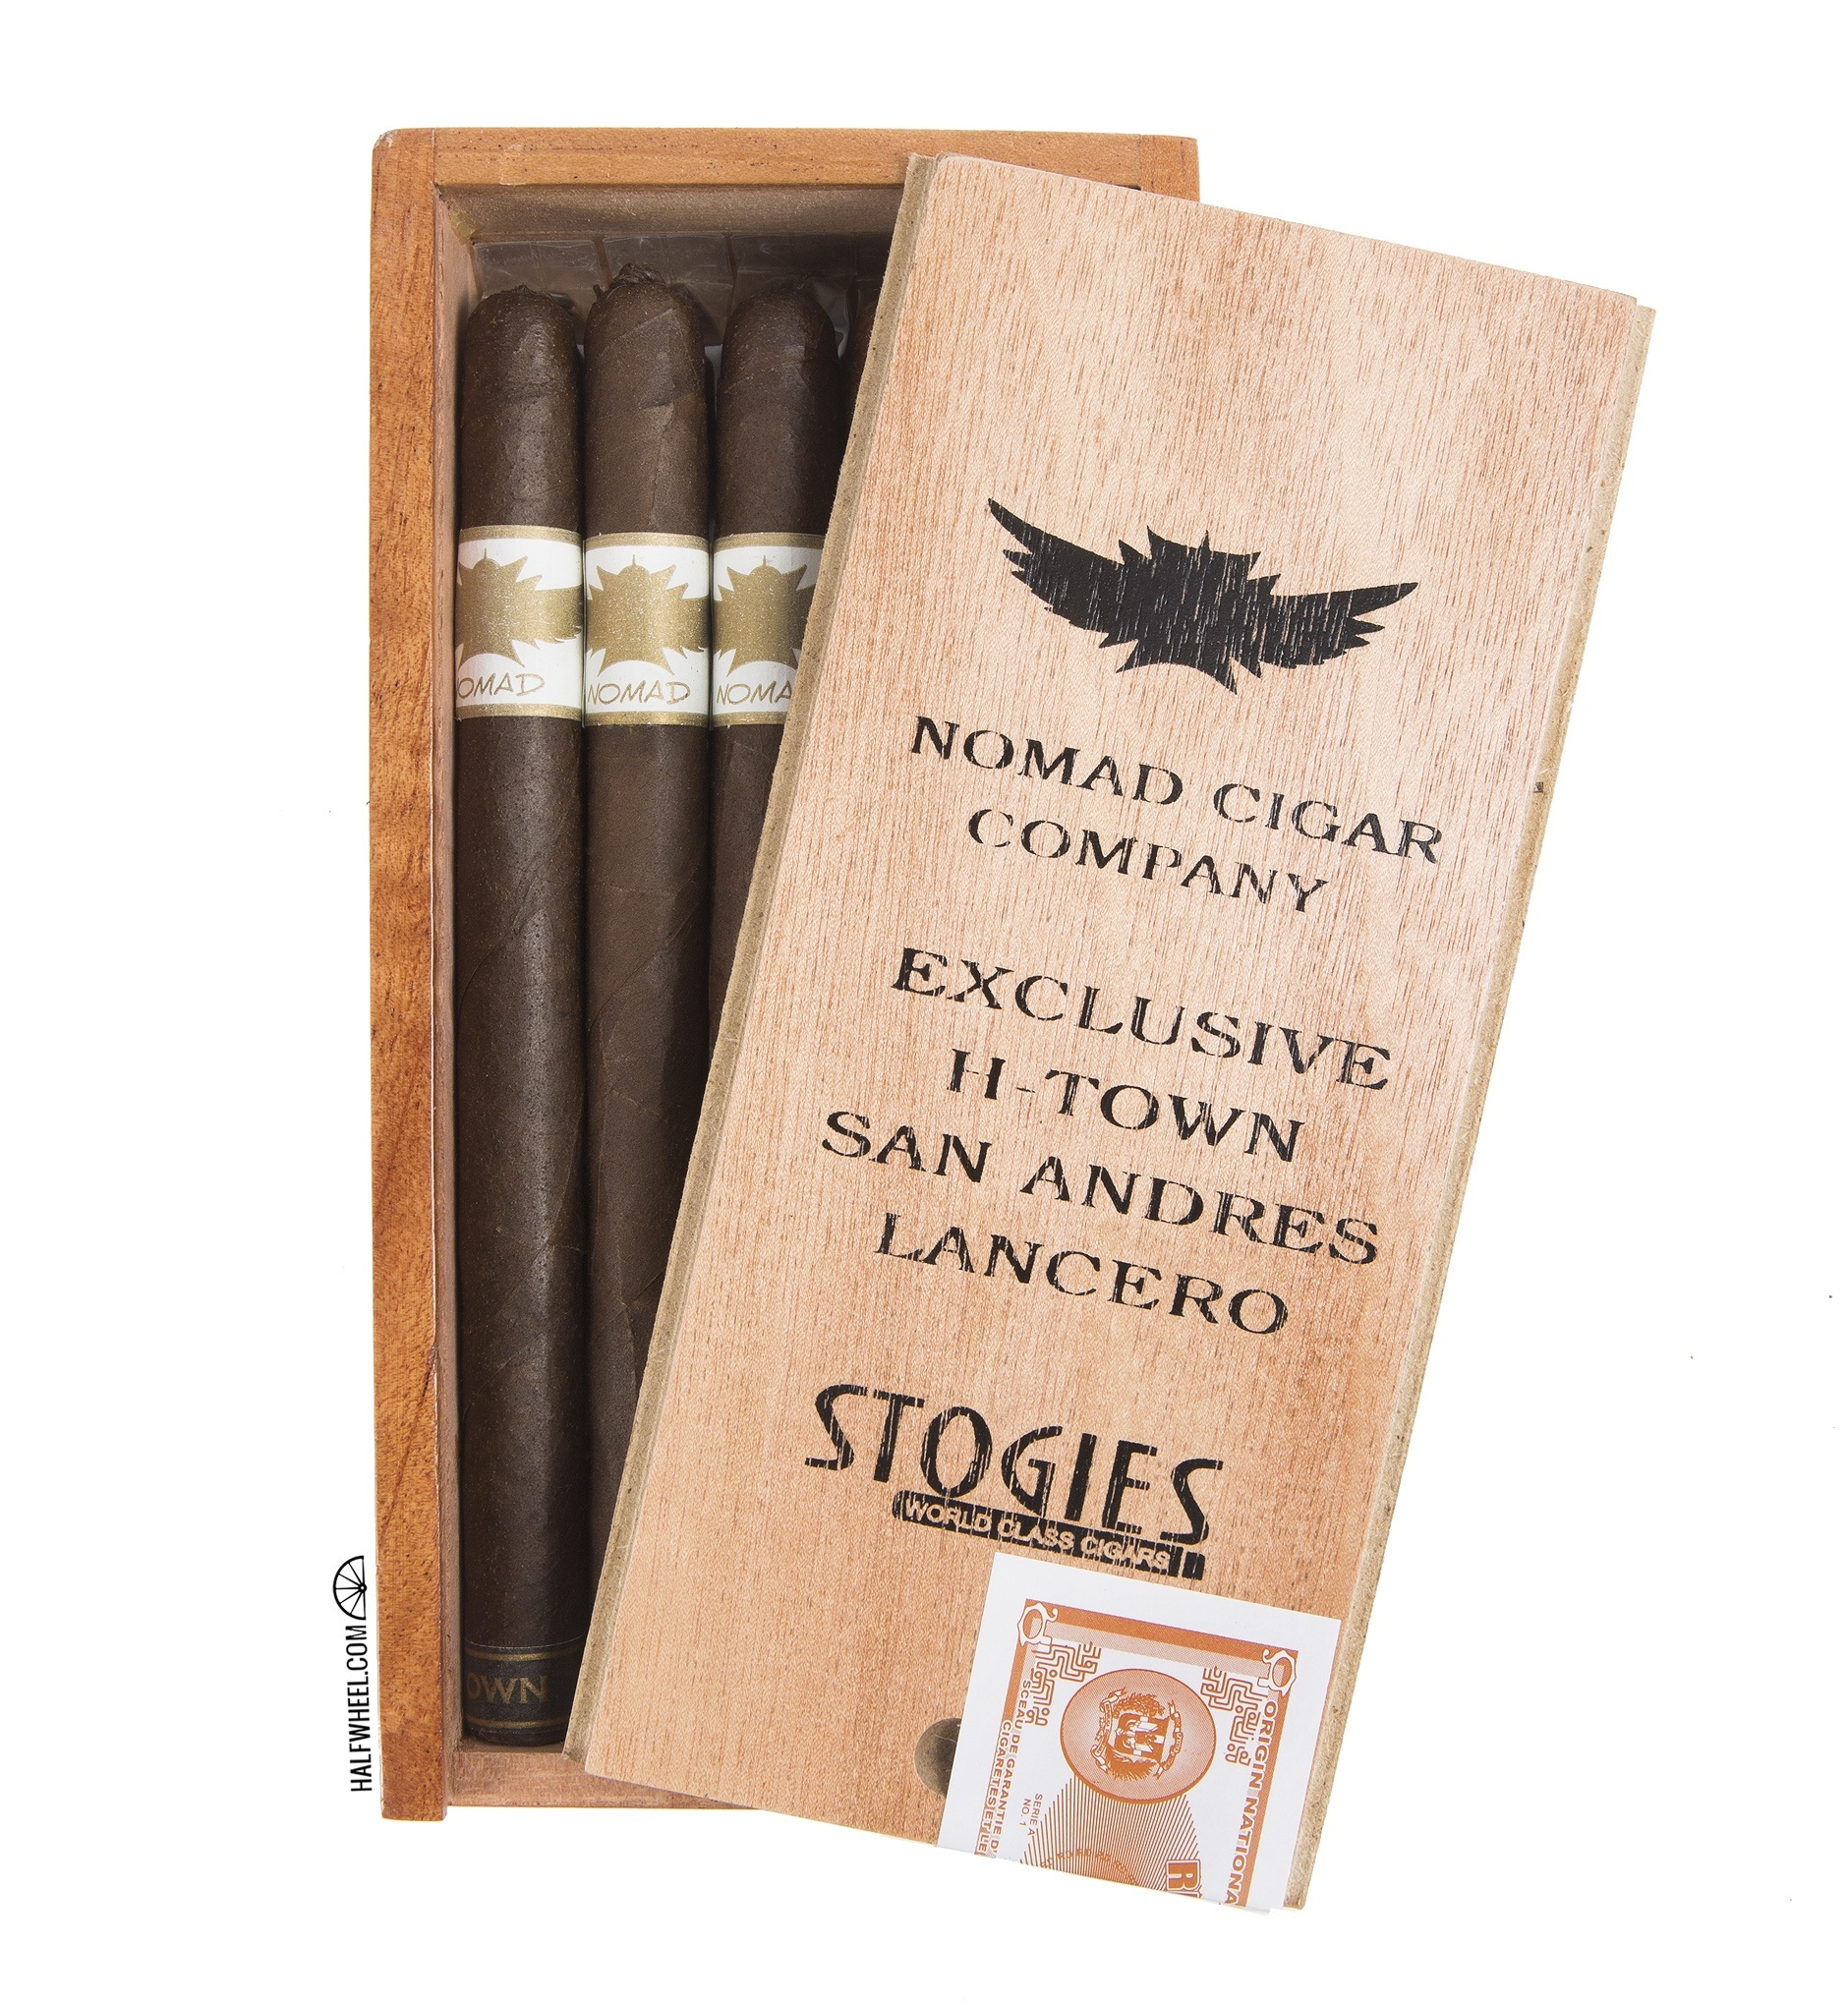 Nomad H-Town San Andres Lancero Box 2